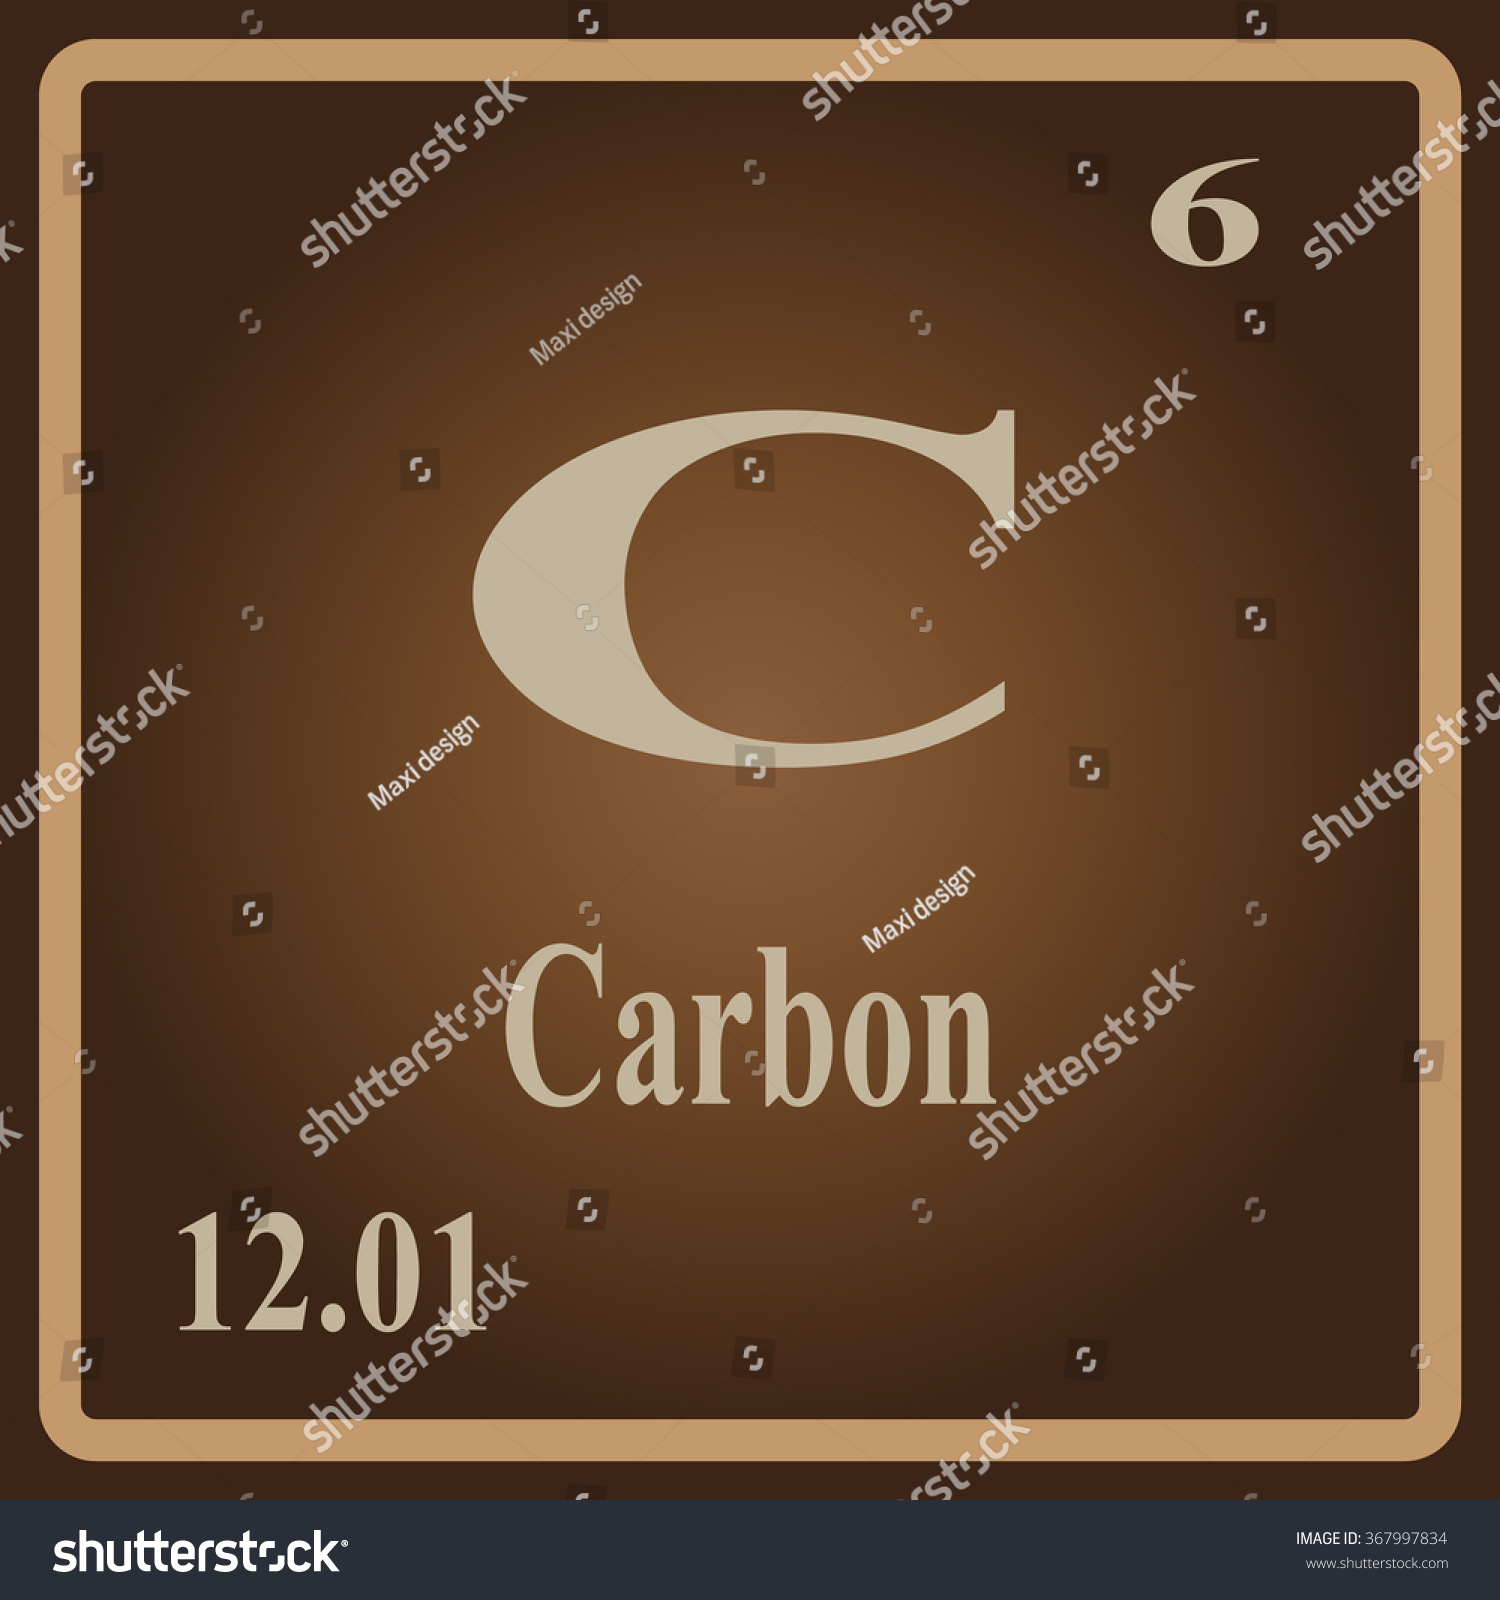 Periodic table elements carbon stock vector 367997834 shutterstock urtaz Image collections